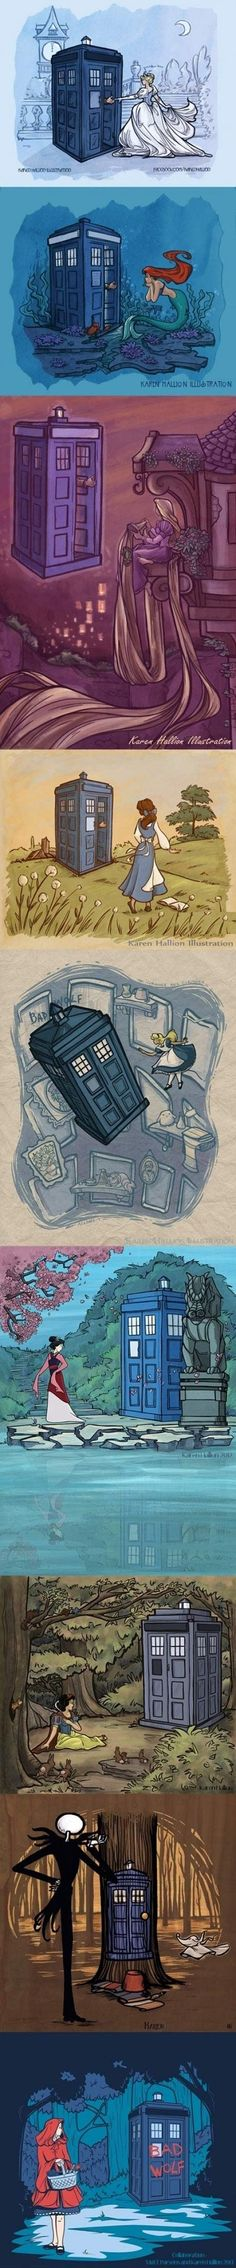 The Doctor is always looking for a new companion!